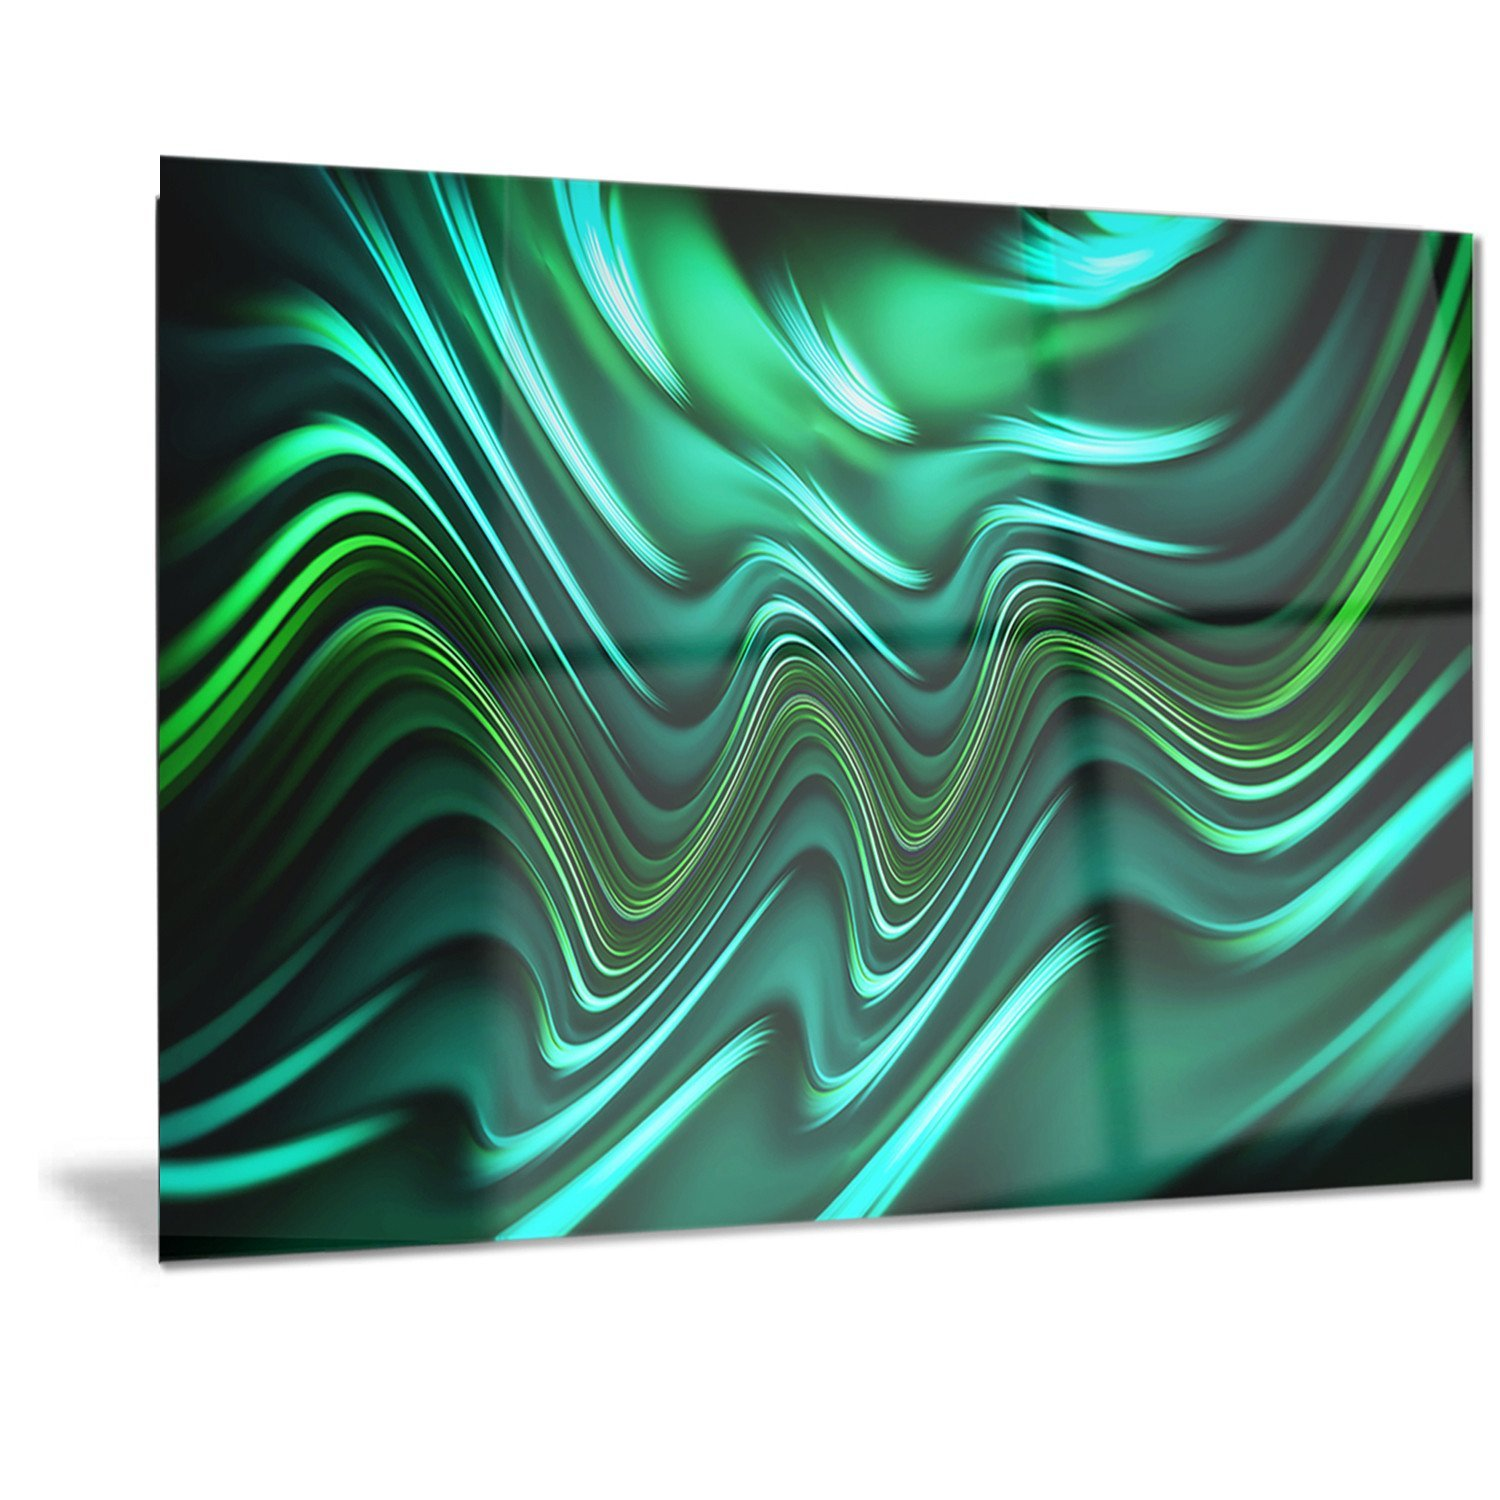 28x12  Designart Emerald Energy Green Abstract Metal Wall Art - MT3020 - 60x28 - 5 Panels